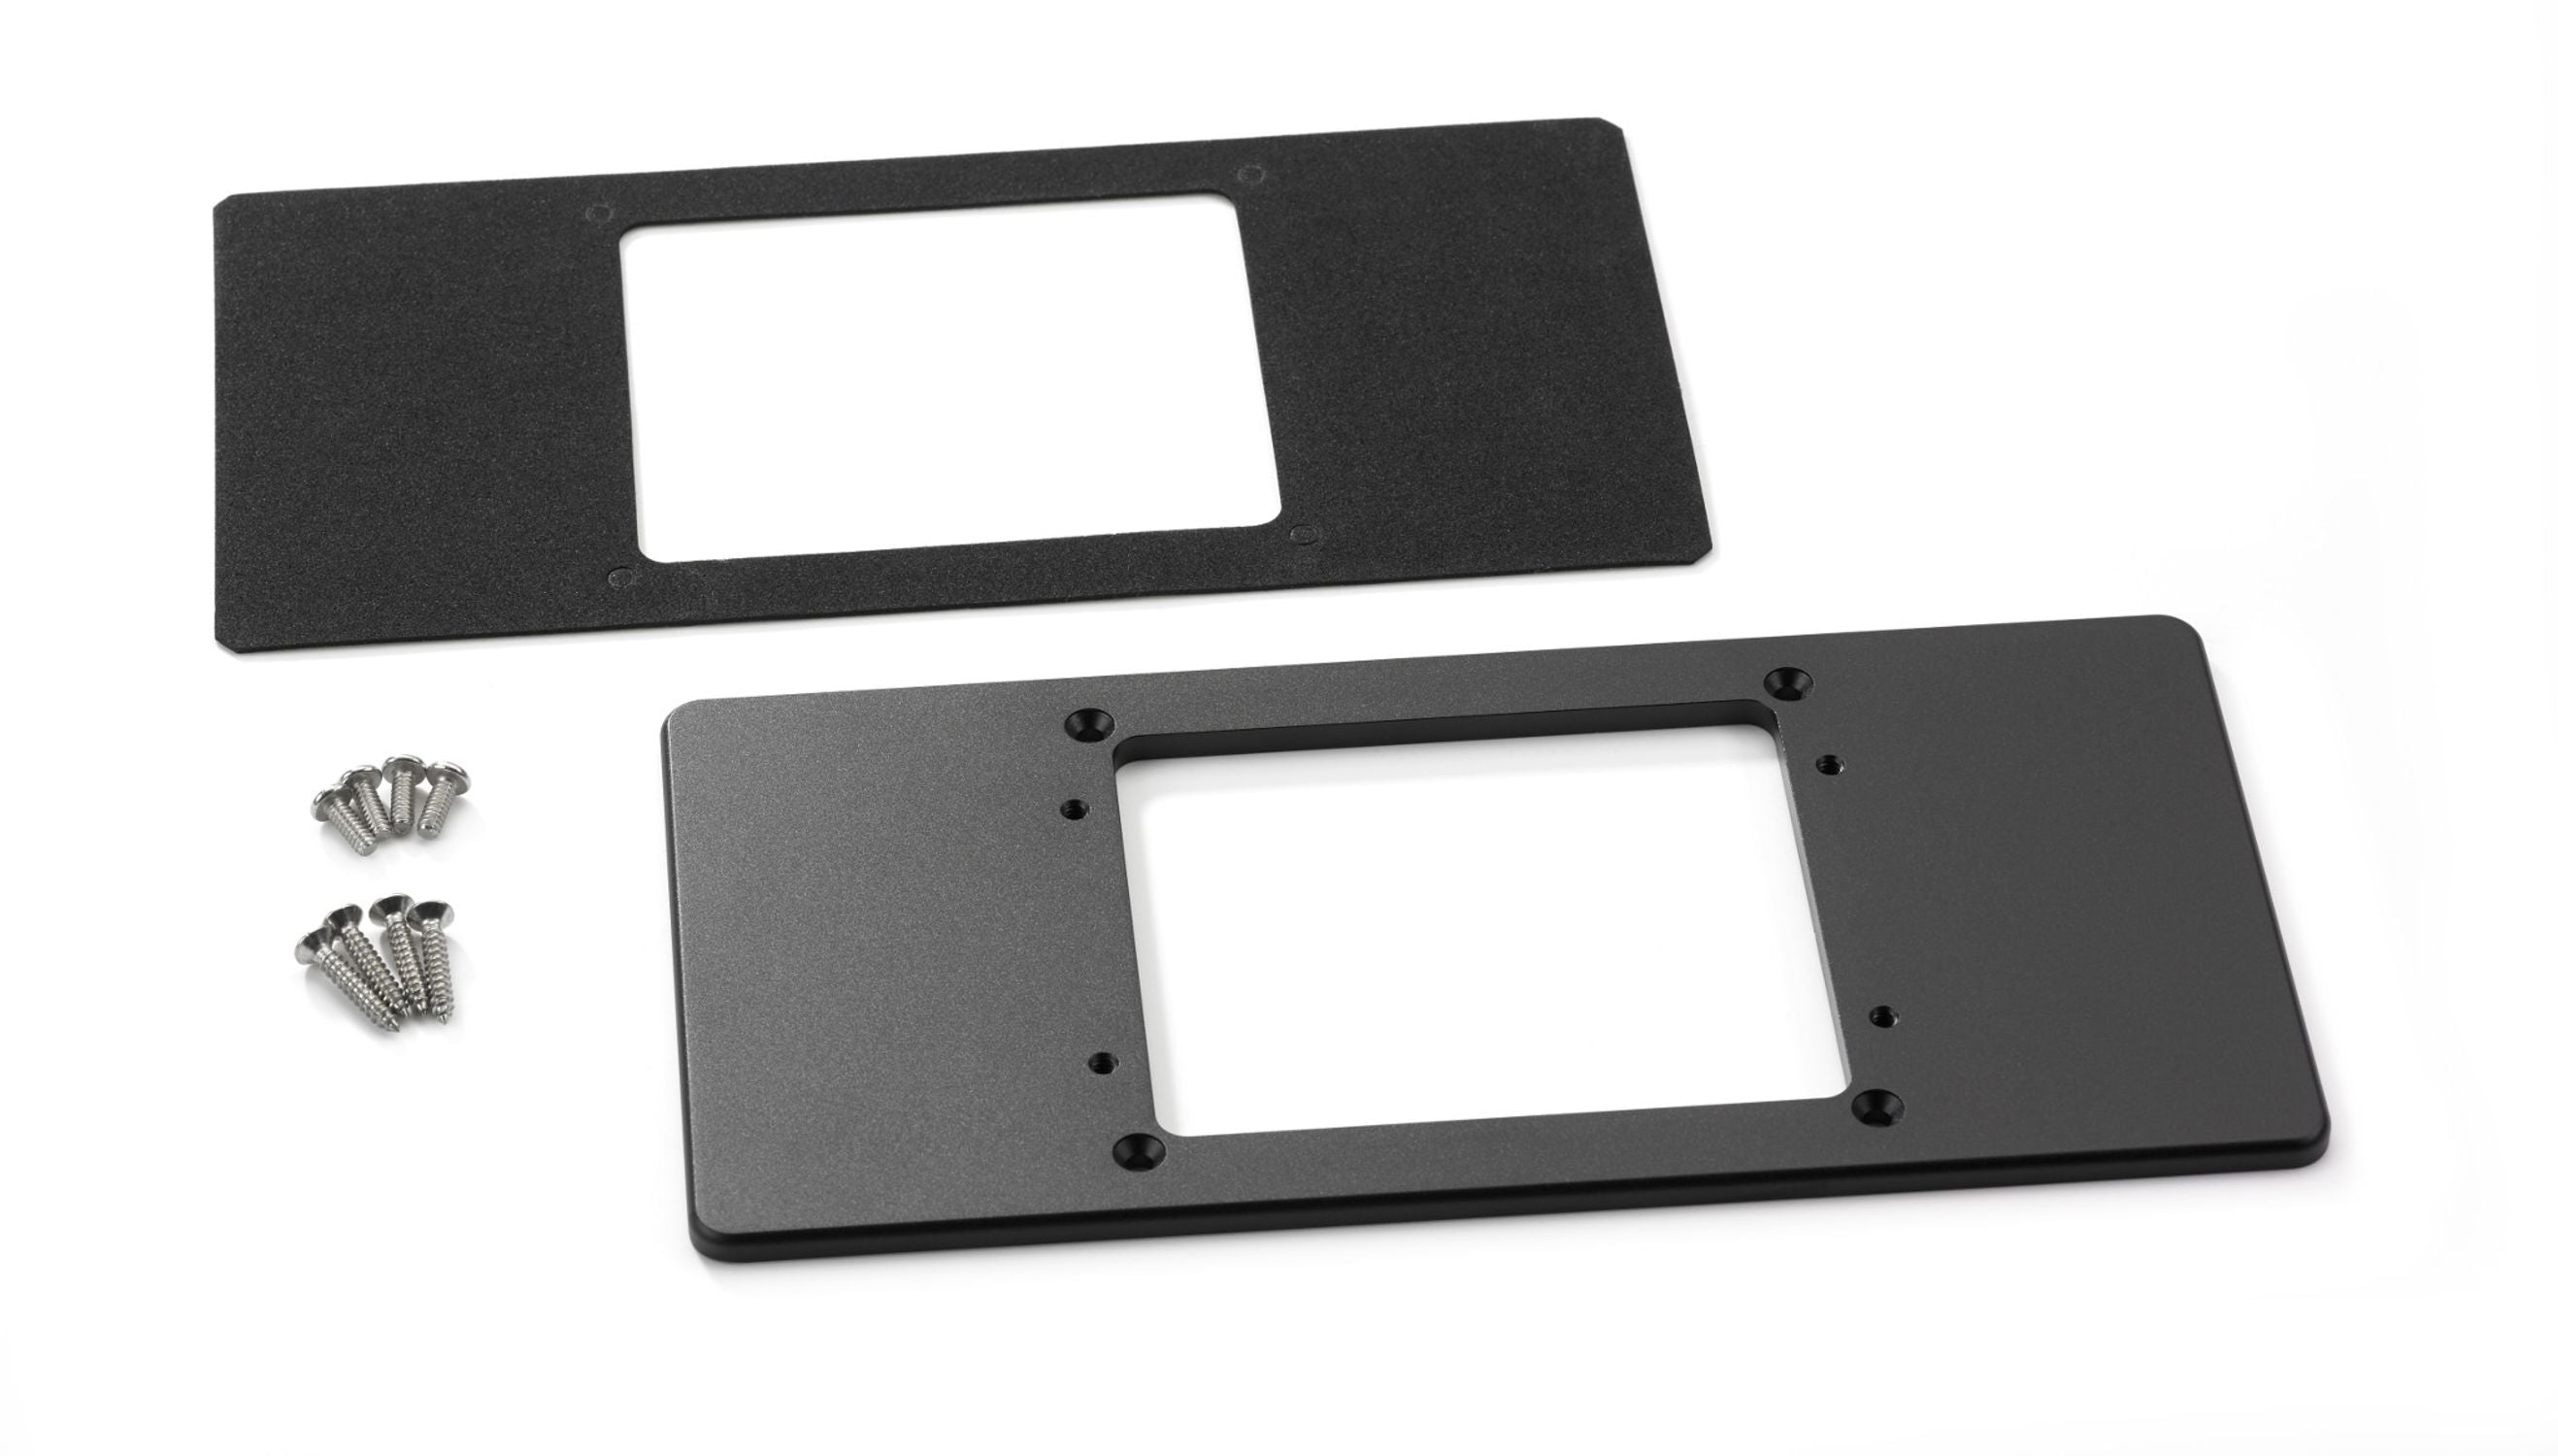 MMP-2-BK Mounting Plate